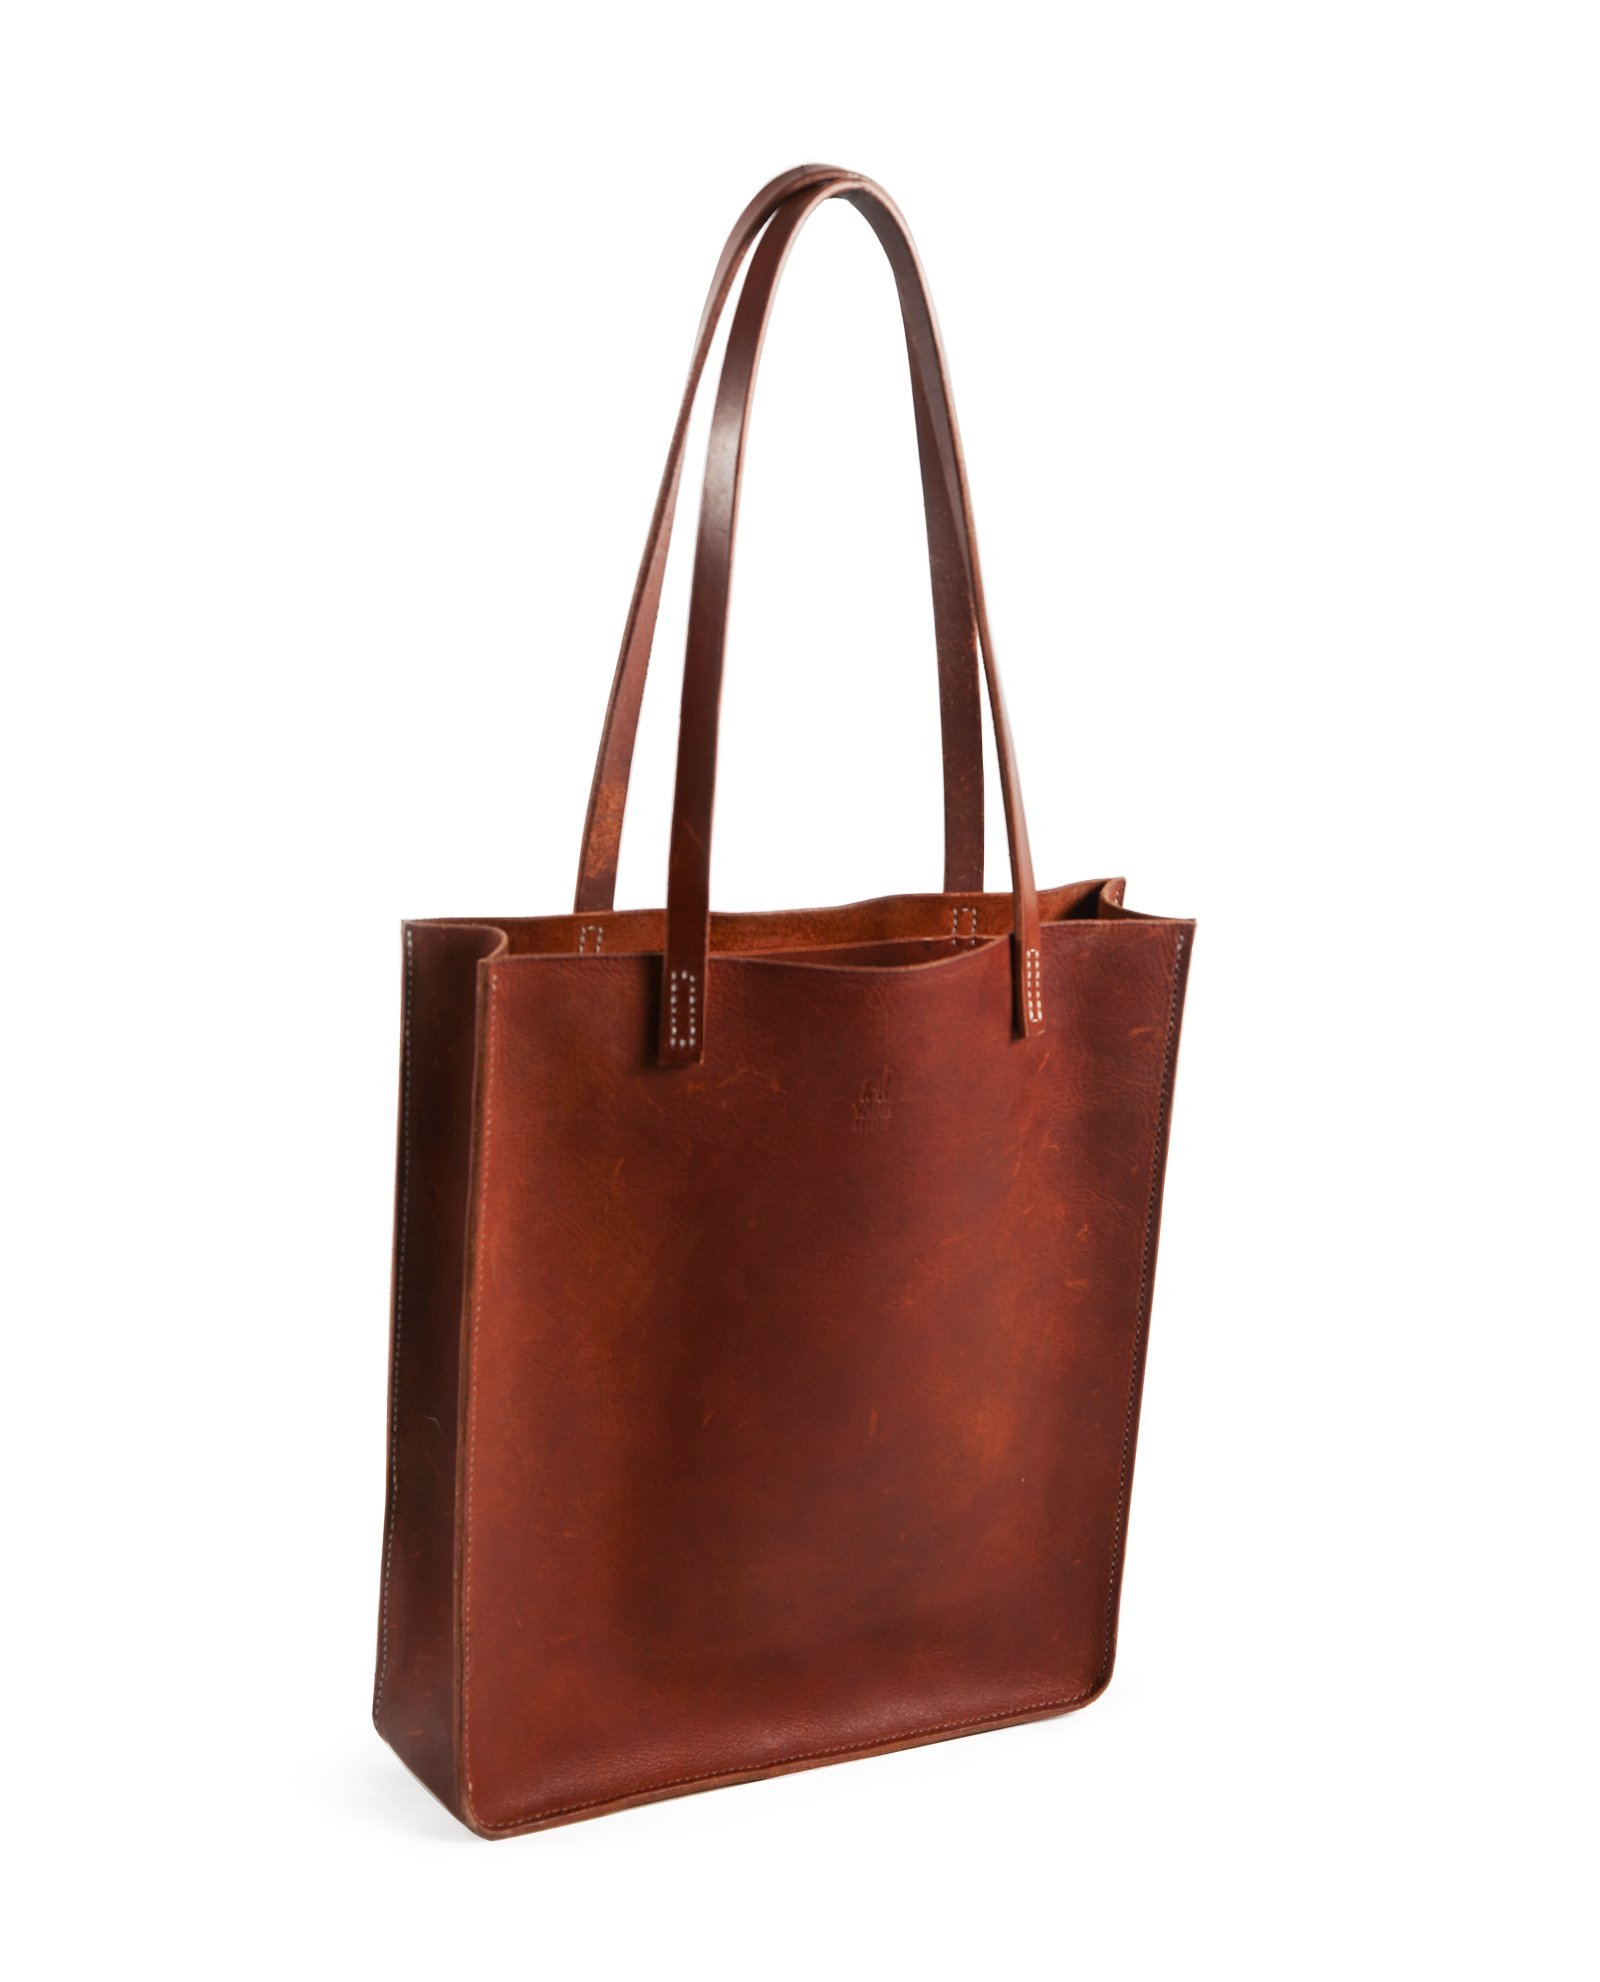 Ranch Leather tote